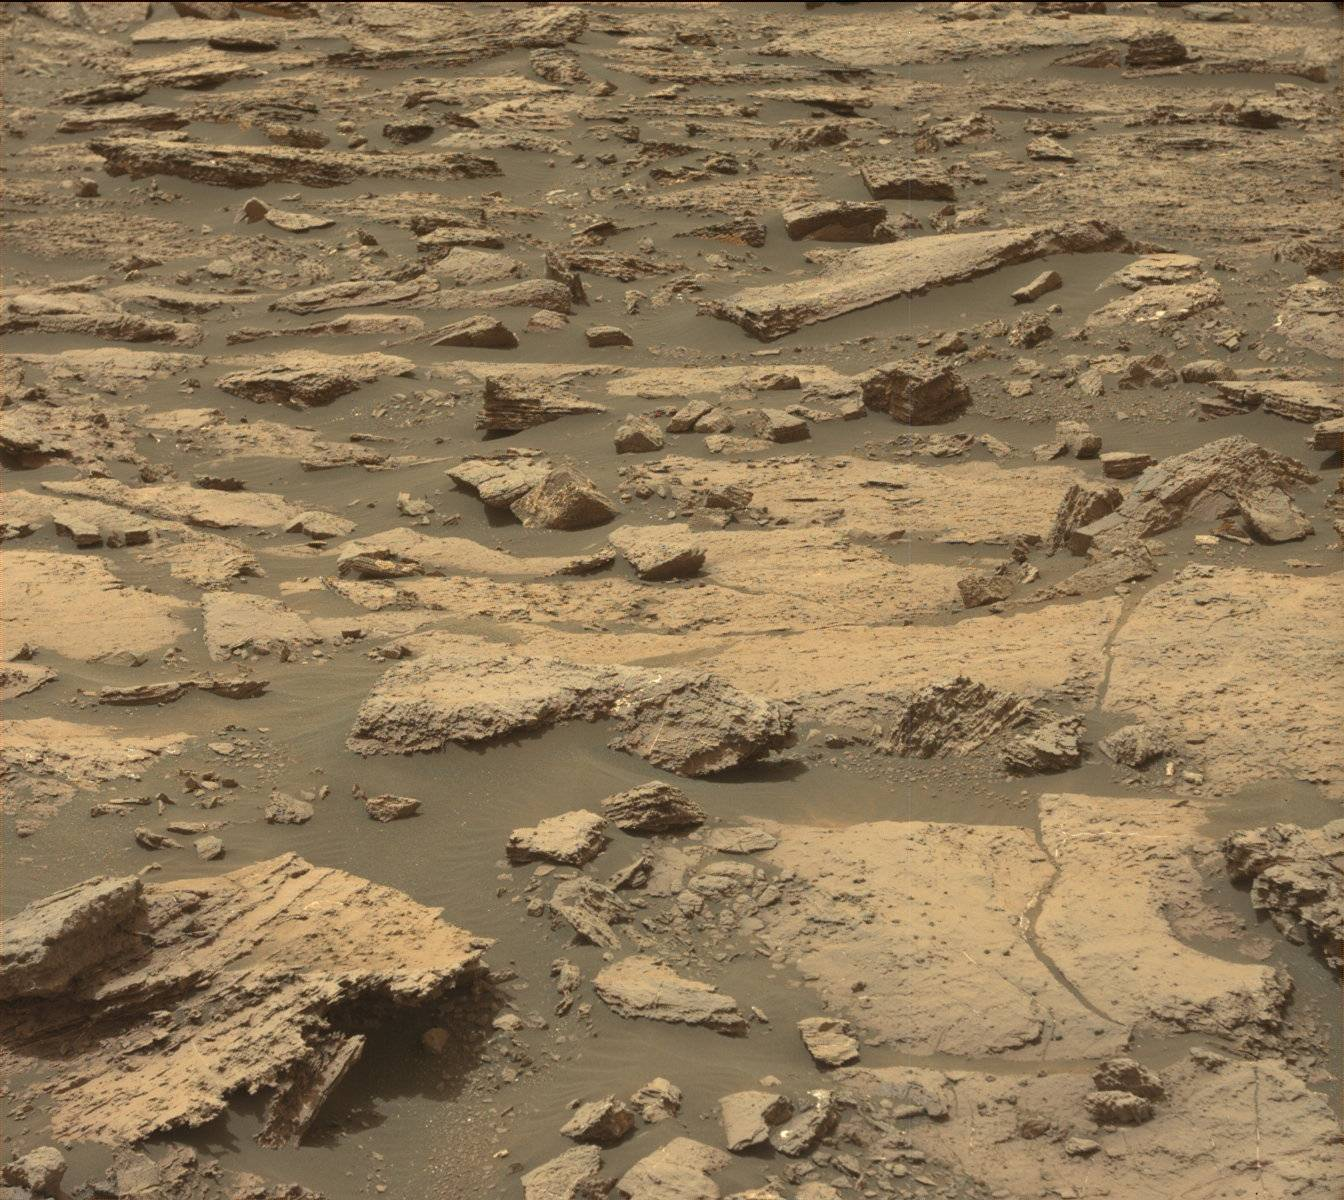 Nasa's Mars rover Curiosity acquired this image using its Mast Camera (Mastcam) on Sol 1477